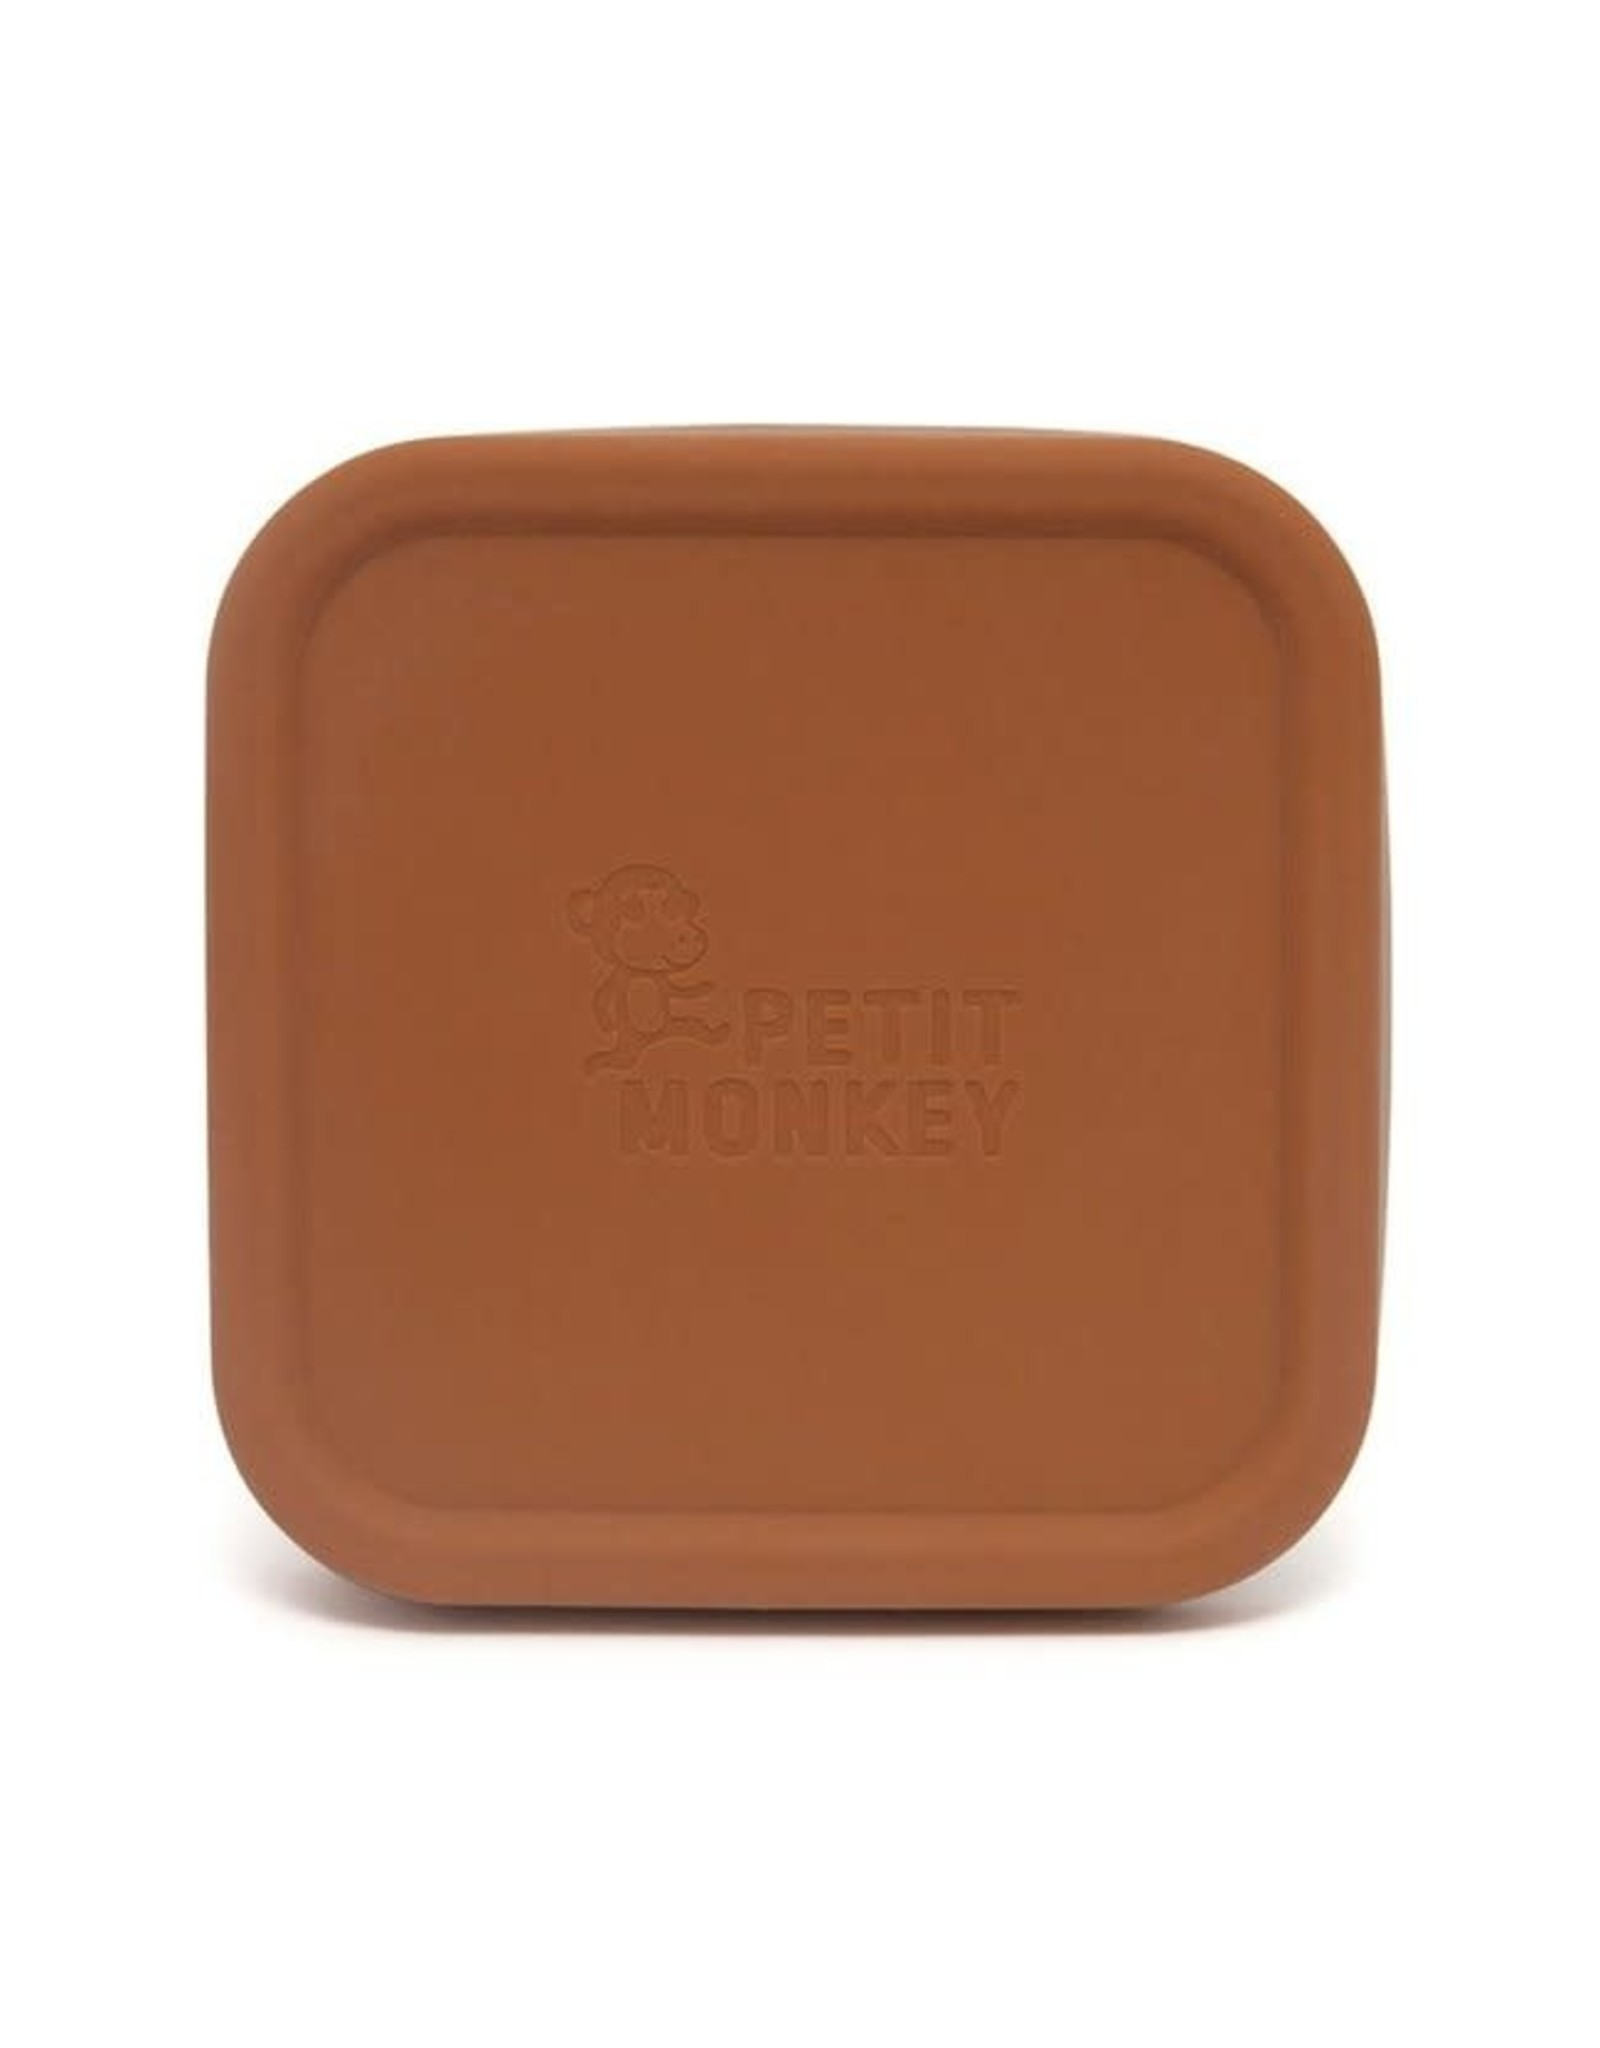 Petit Monkey stainless steel mini lunchbox baked clay